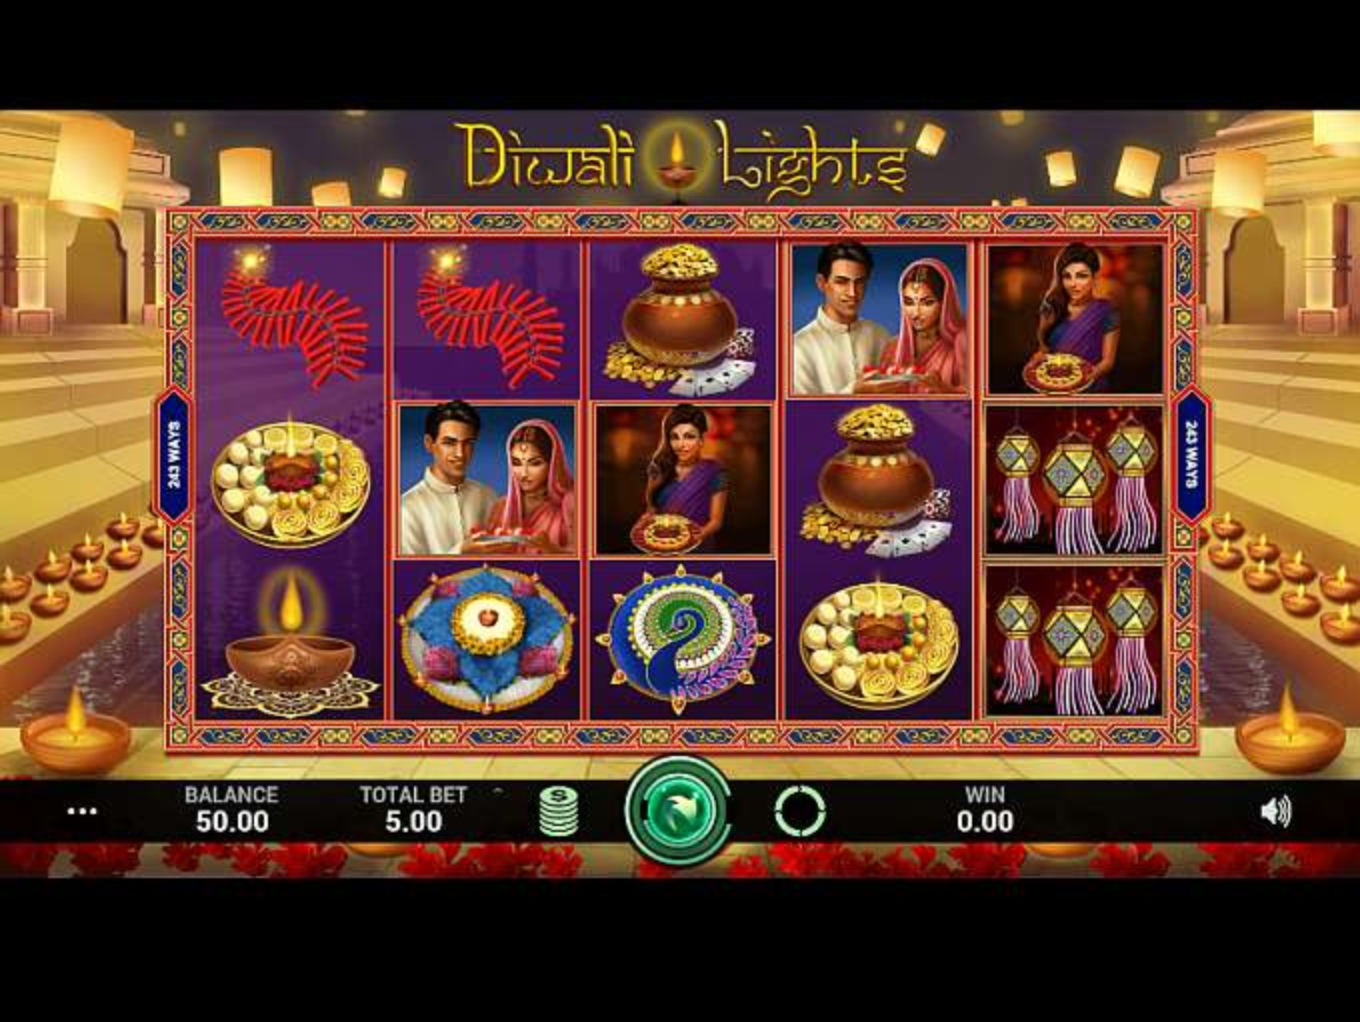 The Diwali Lights Online Slot Demo Game by Indi Slots